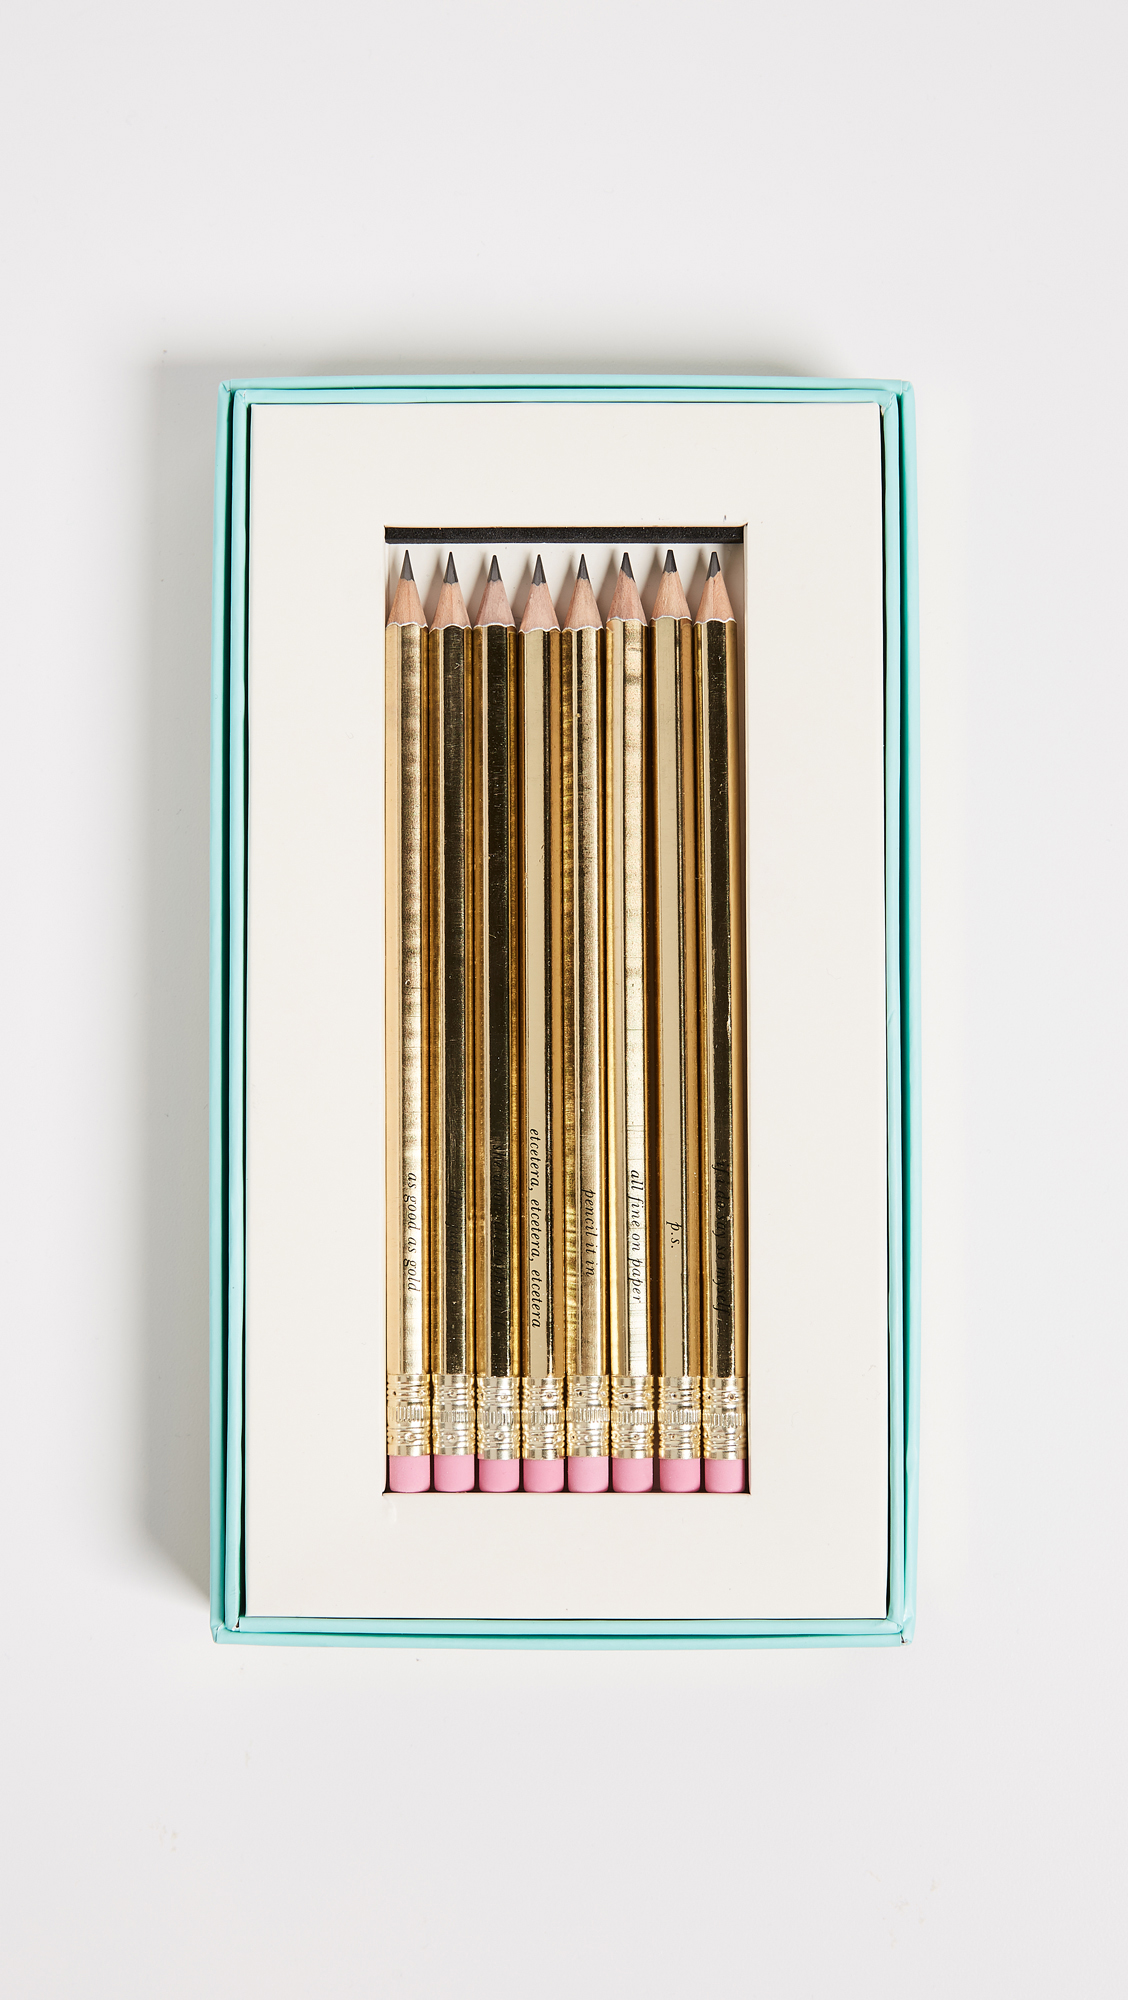 Unique Valentine's Day Gift for woman kate spade pencil